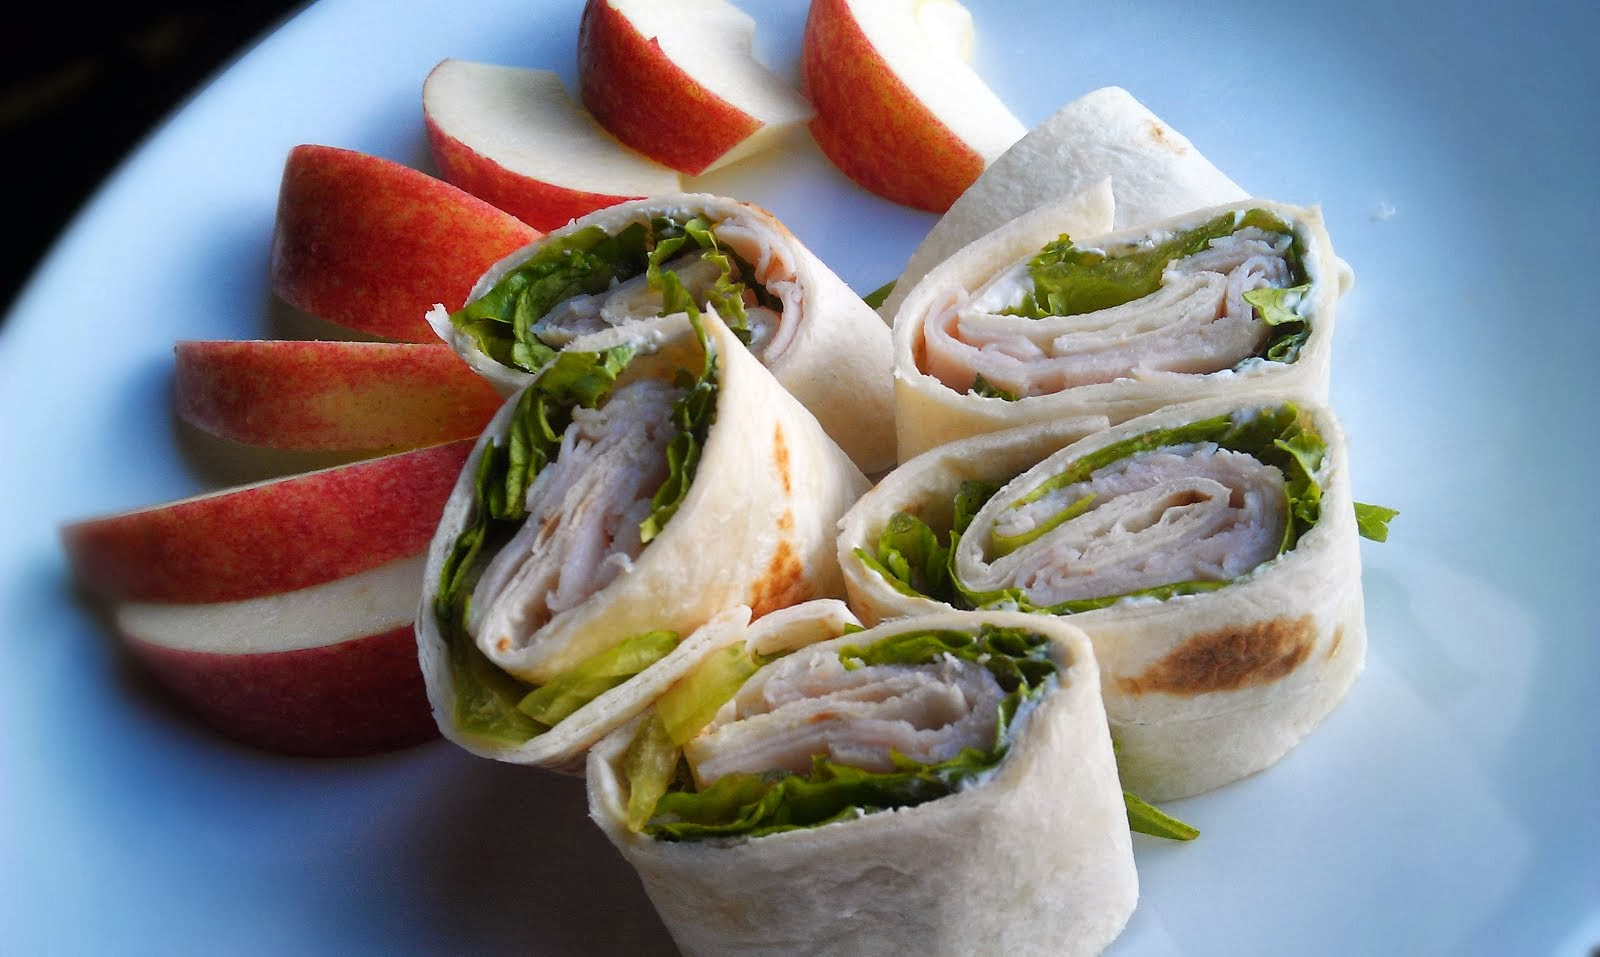 Egg Free Turkey Rolls Ups